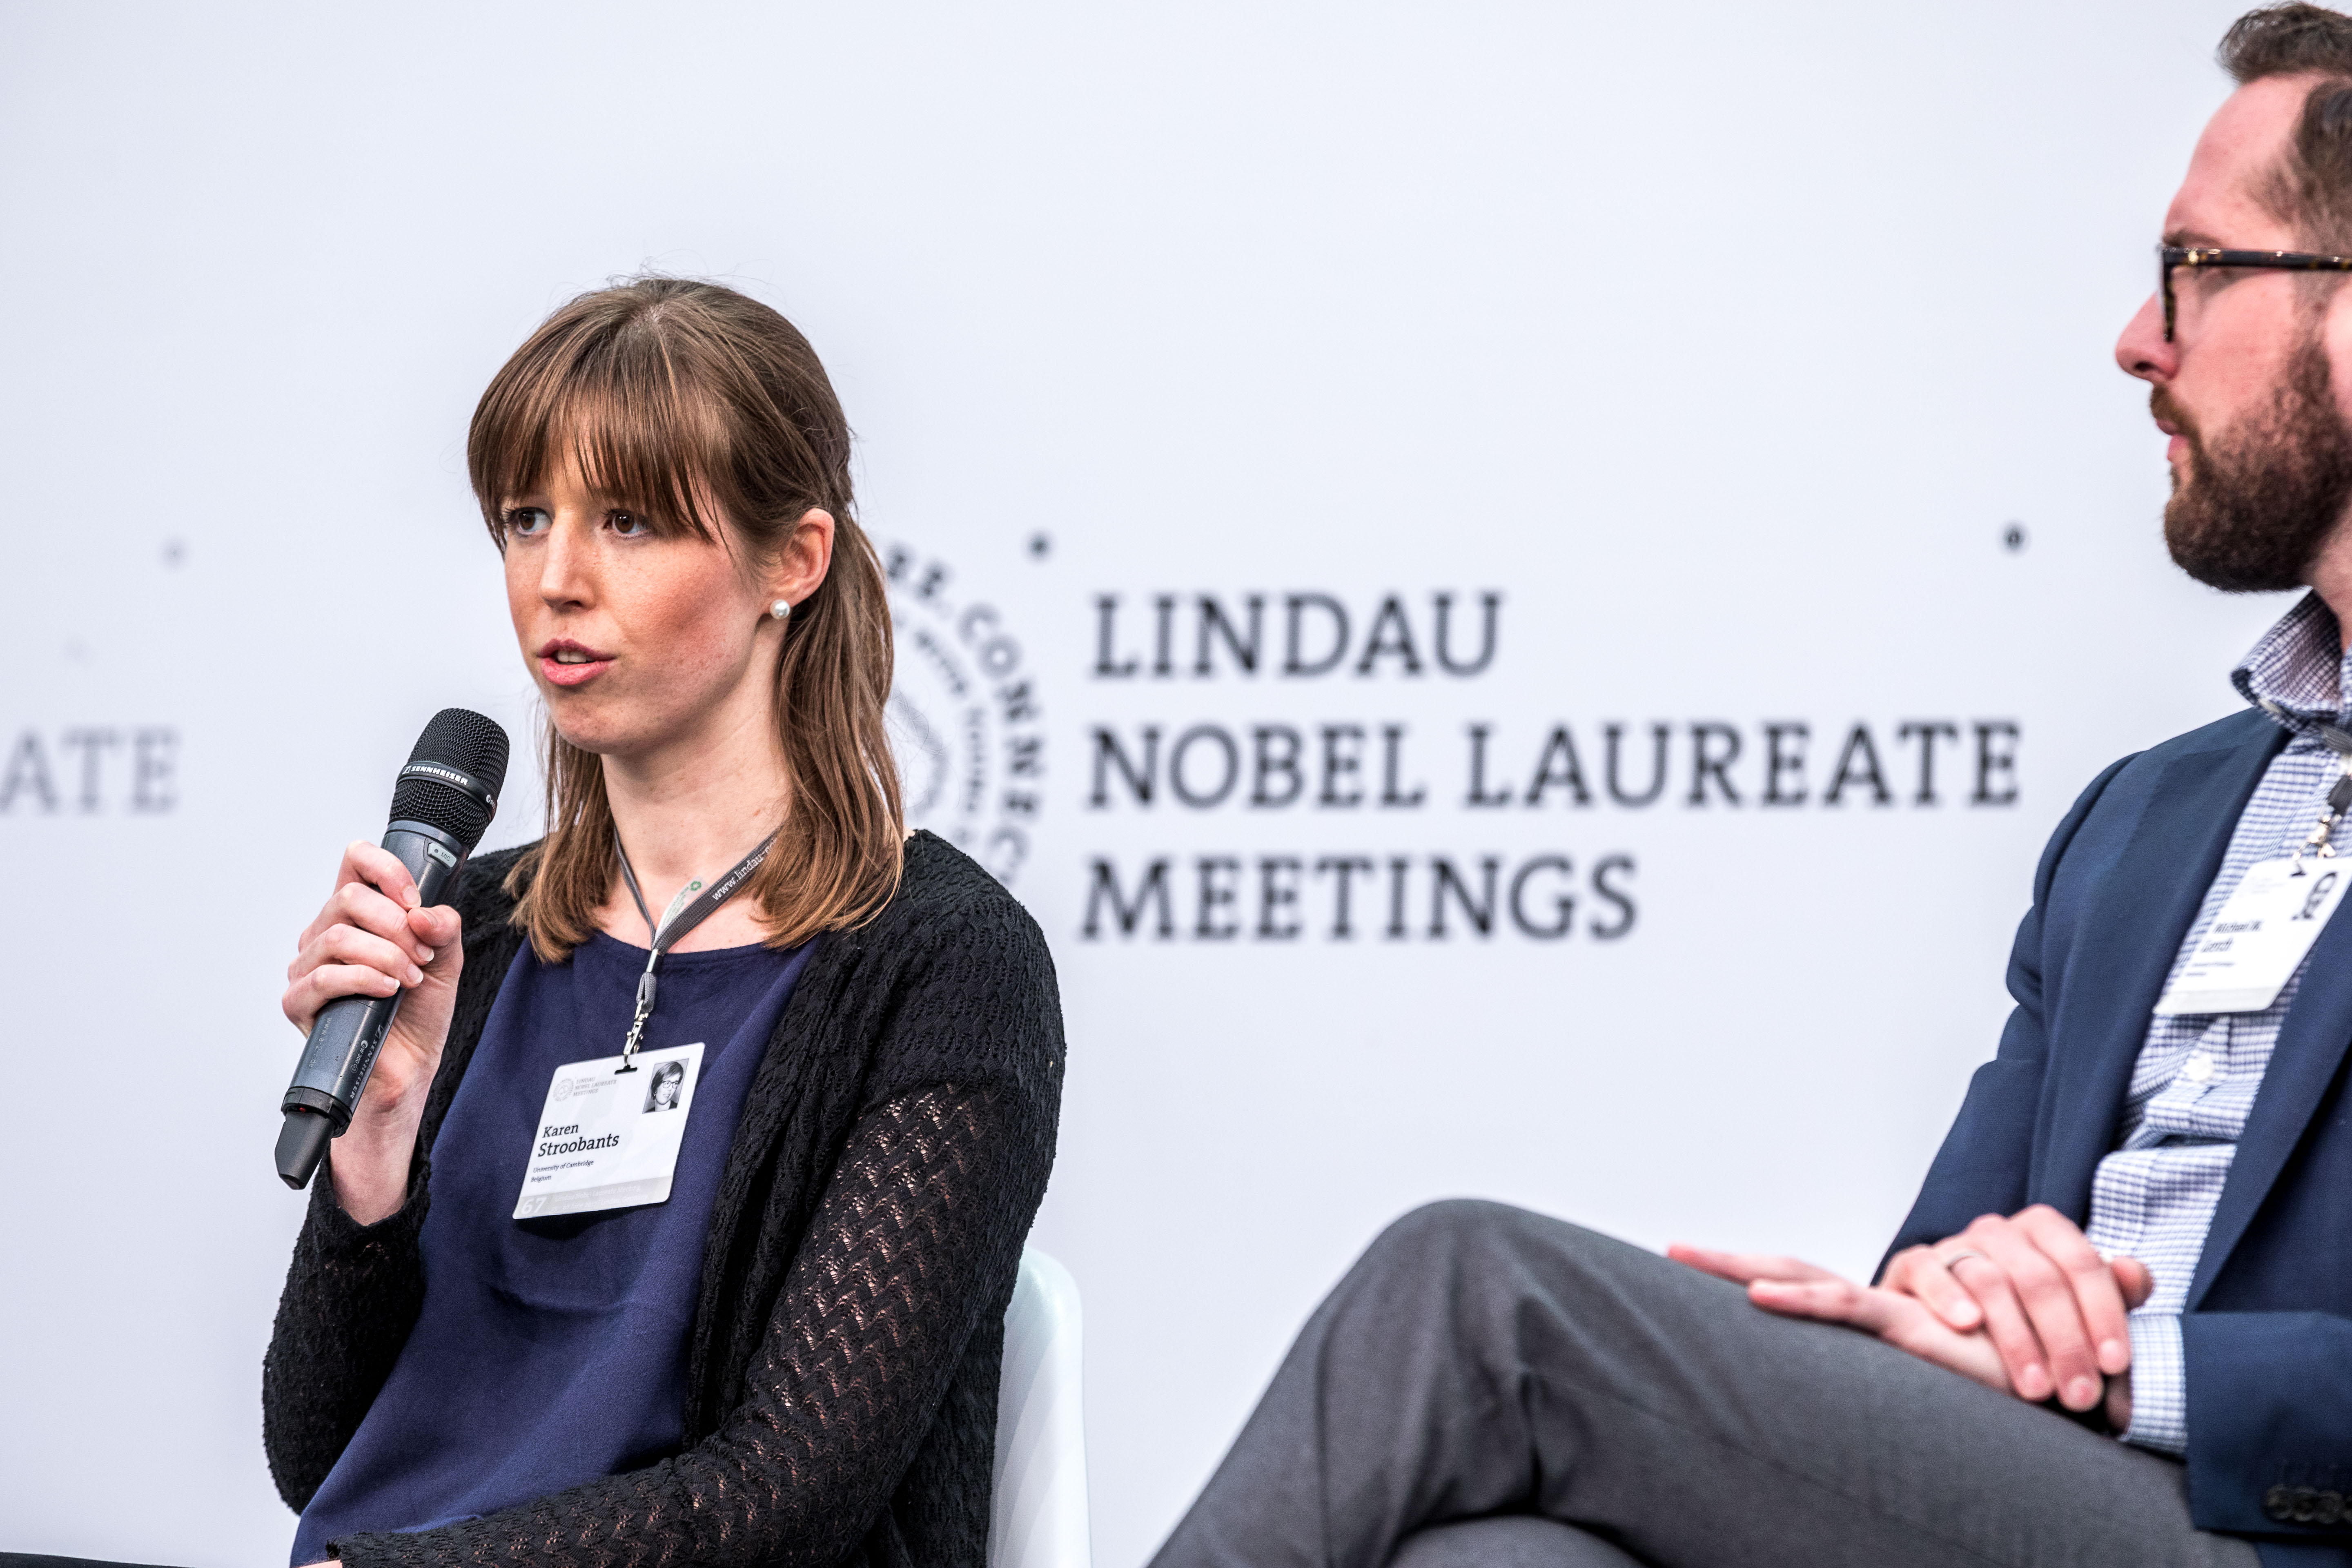 Lindau Alumna Karen Stroobants during the Panel Discussion 'Ethics in Science' at the 67th Lindau Nobel Laureate Meeting, Picture/Credit: Christian Flemming/Lindau Nobel Laureate Meetings